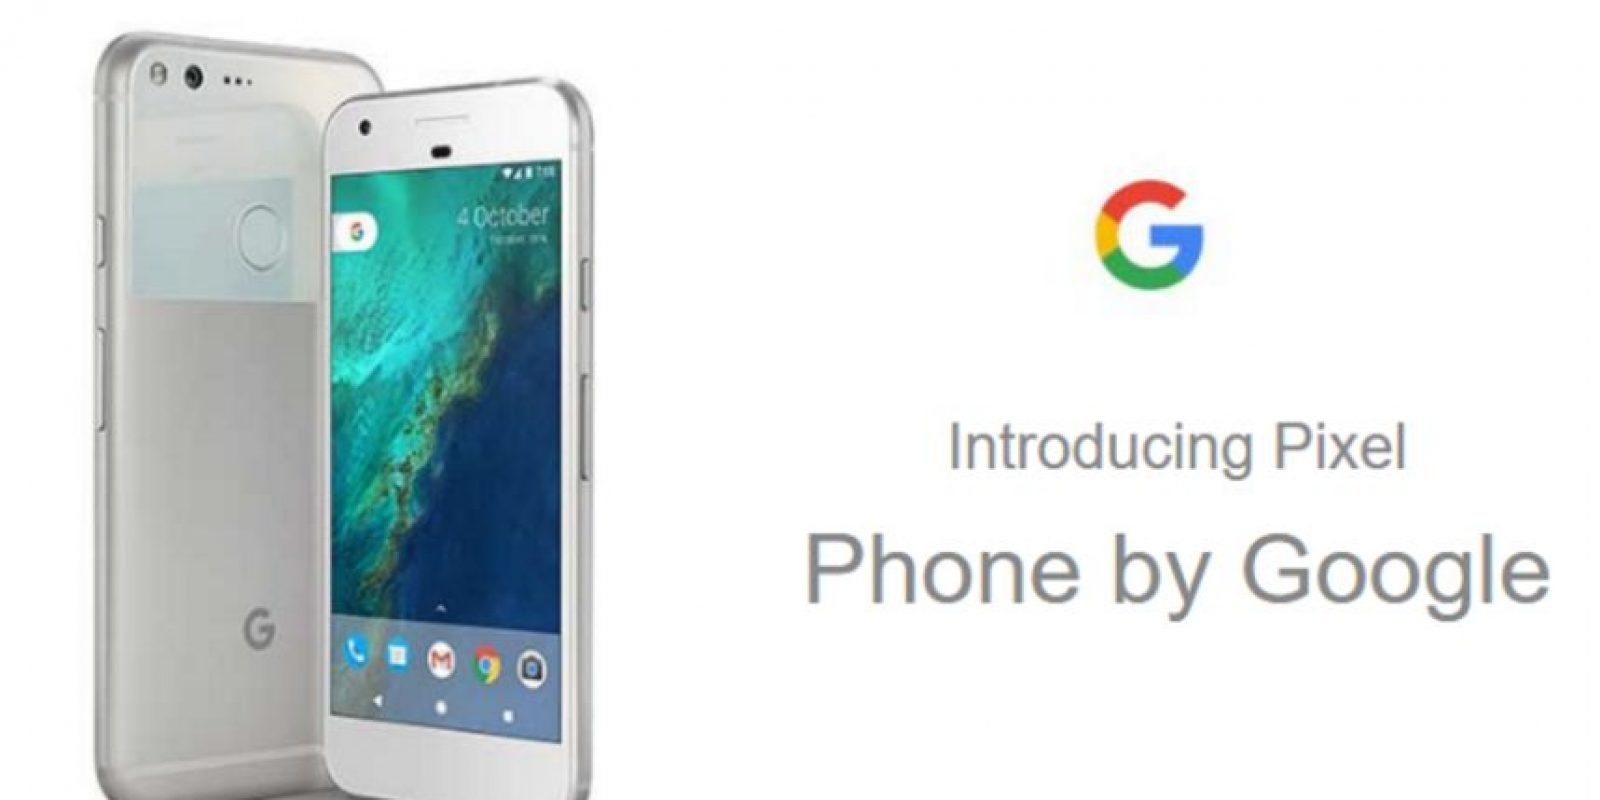 Publicidad de Google Pixel. Foto: Carphone Warehouse/Google